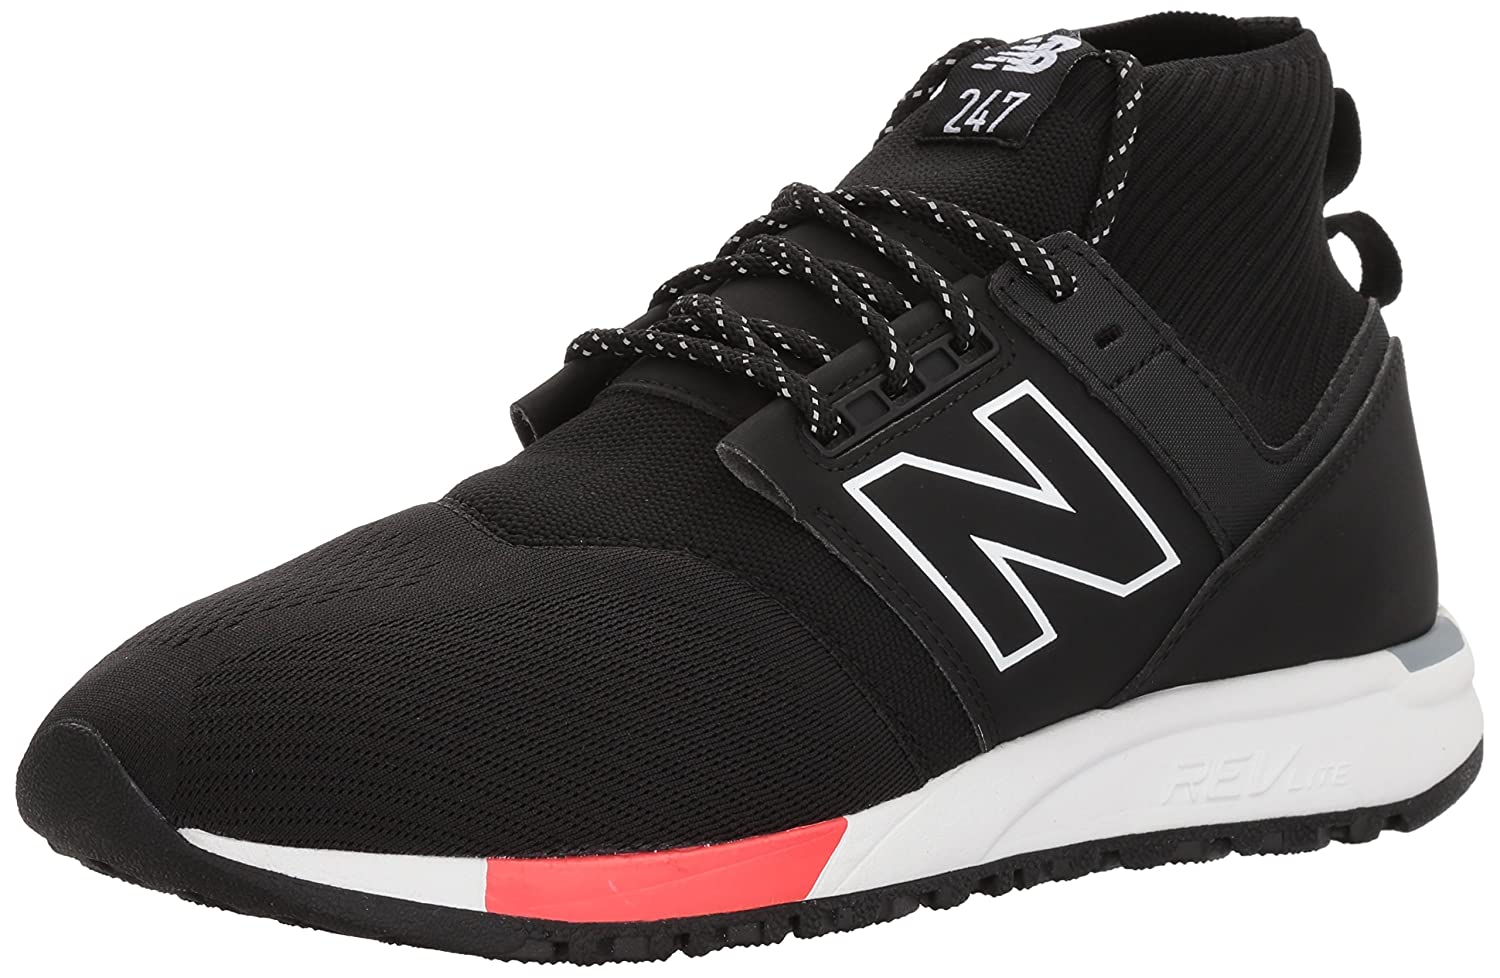 New Balance Men's MRL247OF MID Running Shoes B06XS9LNCL 8.5 D(M) US|black